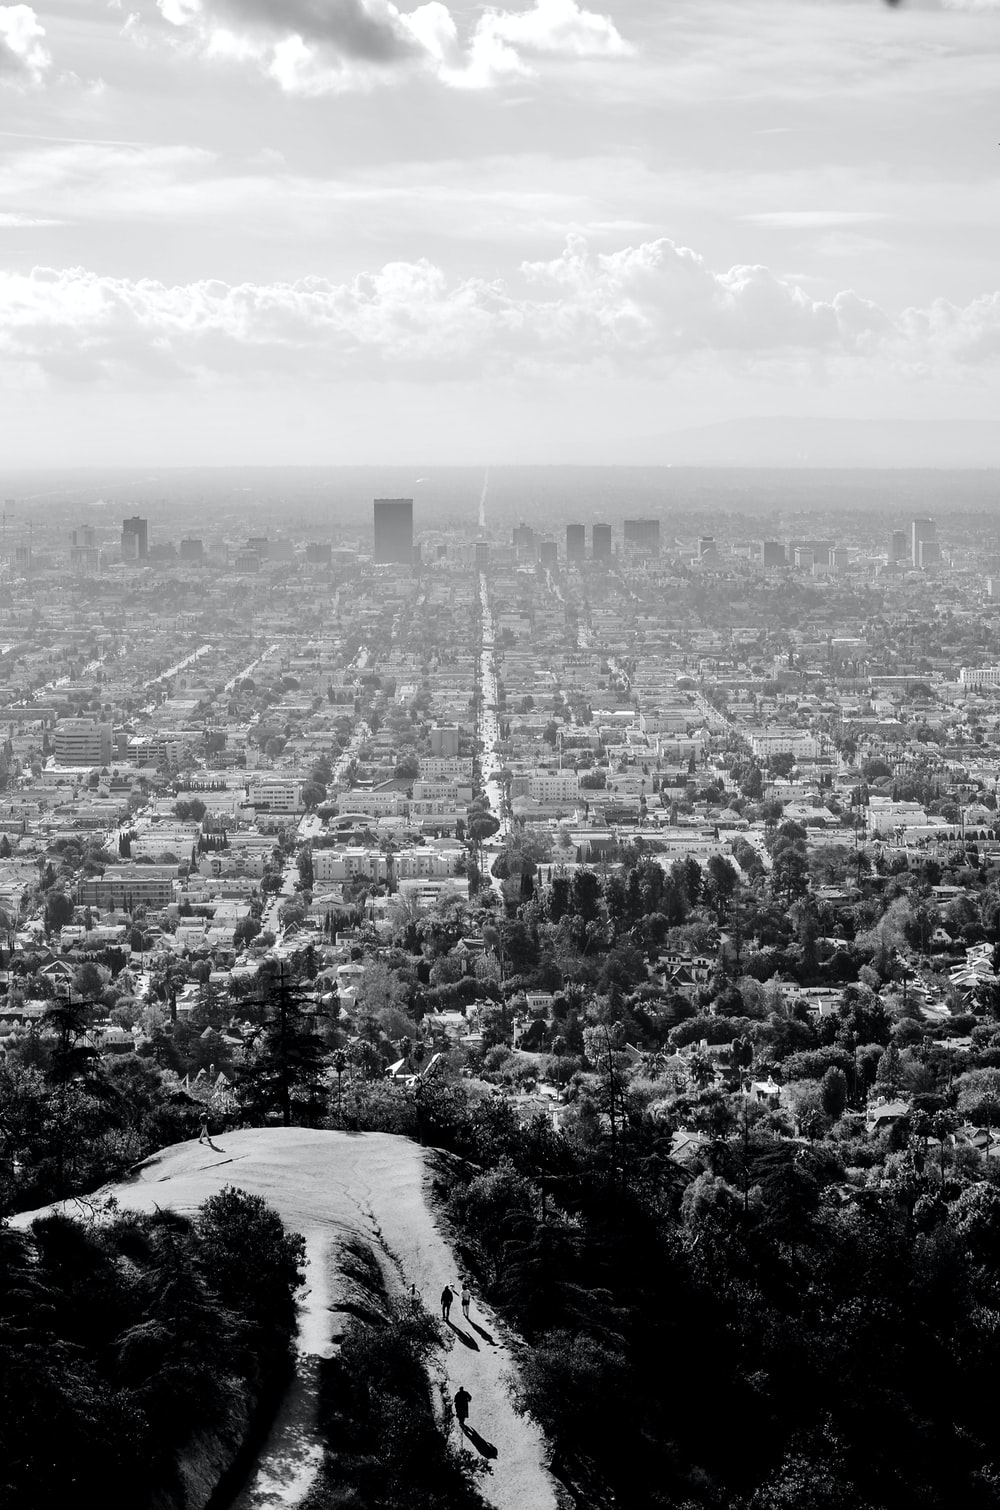 grayscale aerial photo of city